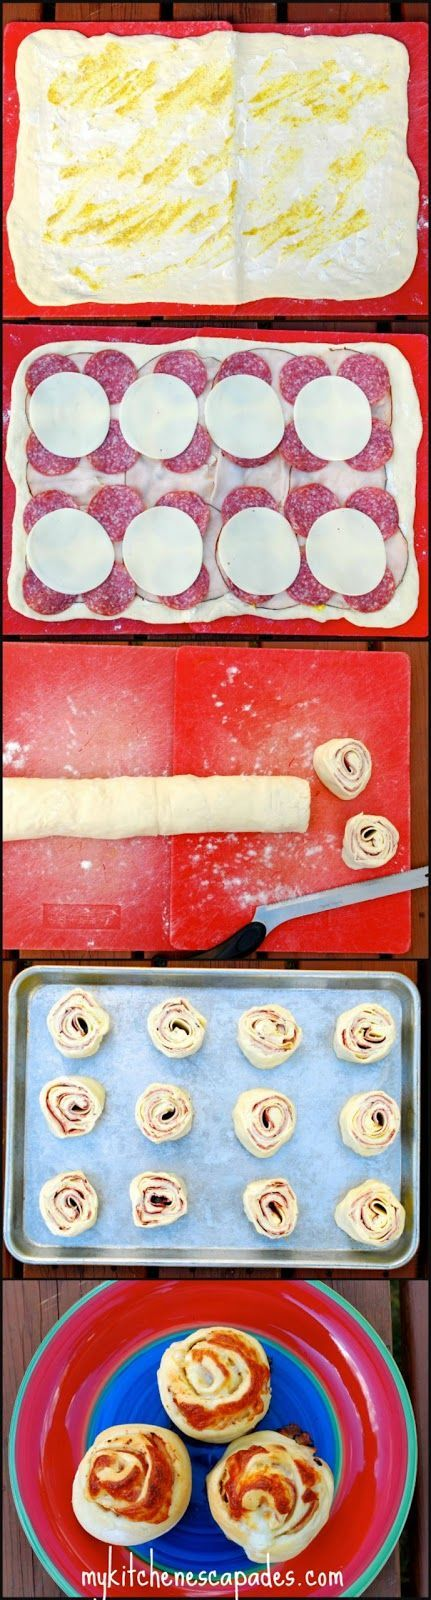 Hot Italian Club Roll-Ups:  serve these rolls hot for dinner or cold for an amazing lunch box surprise!